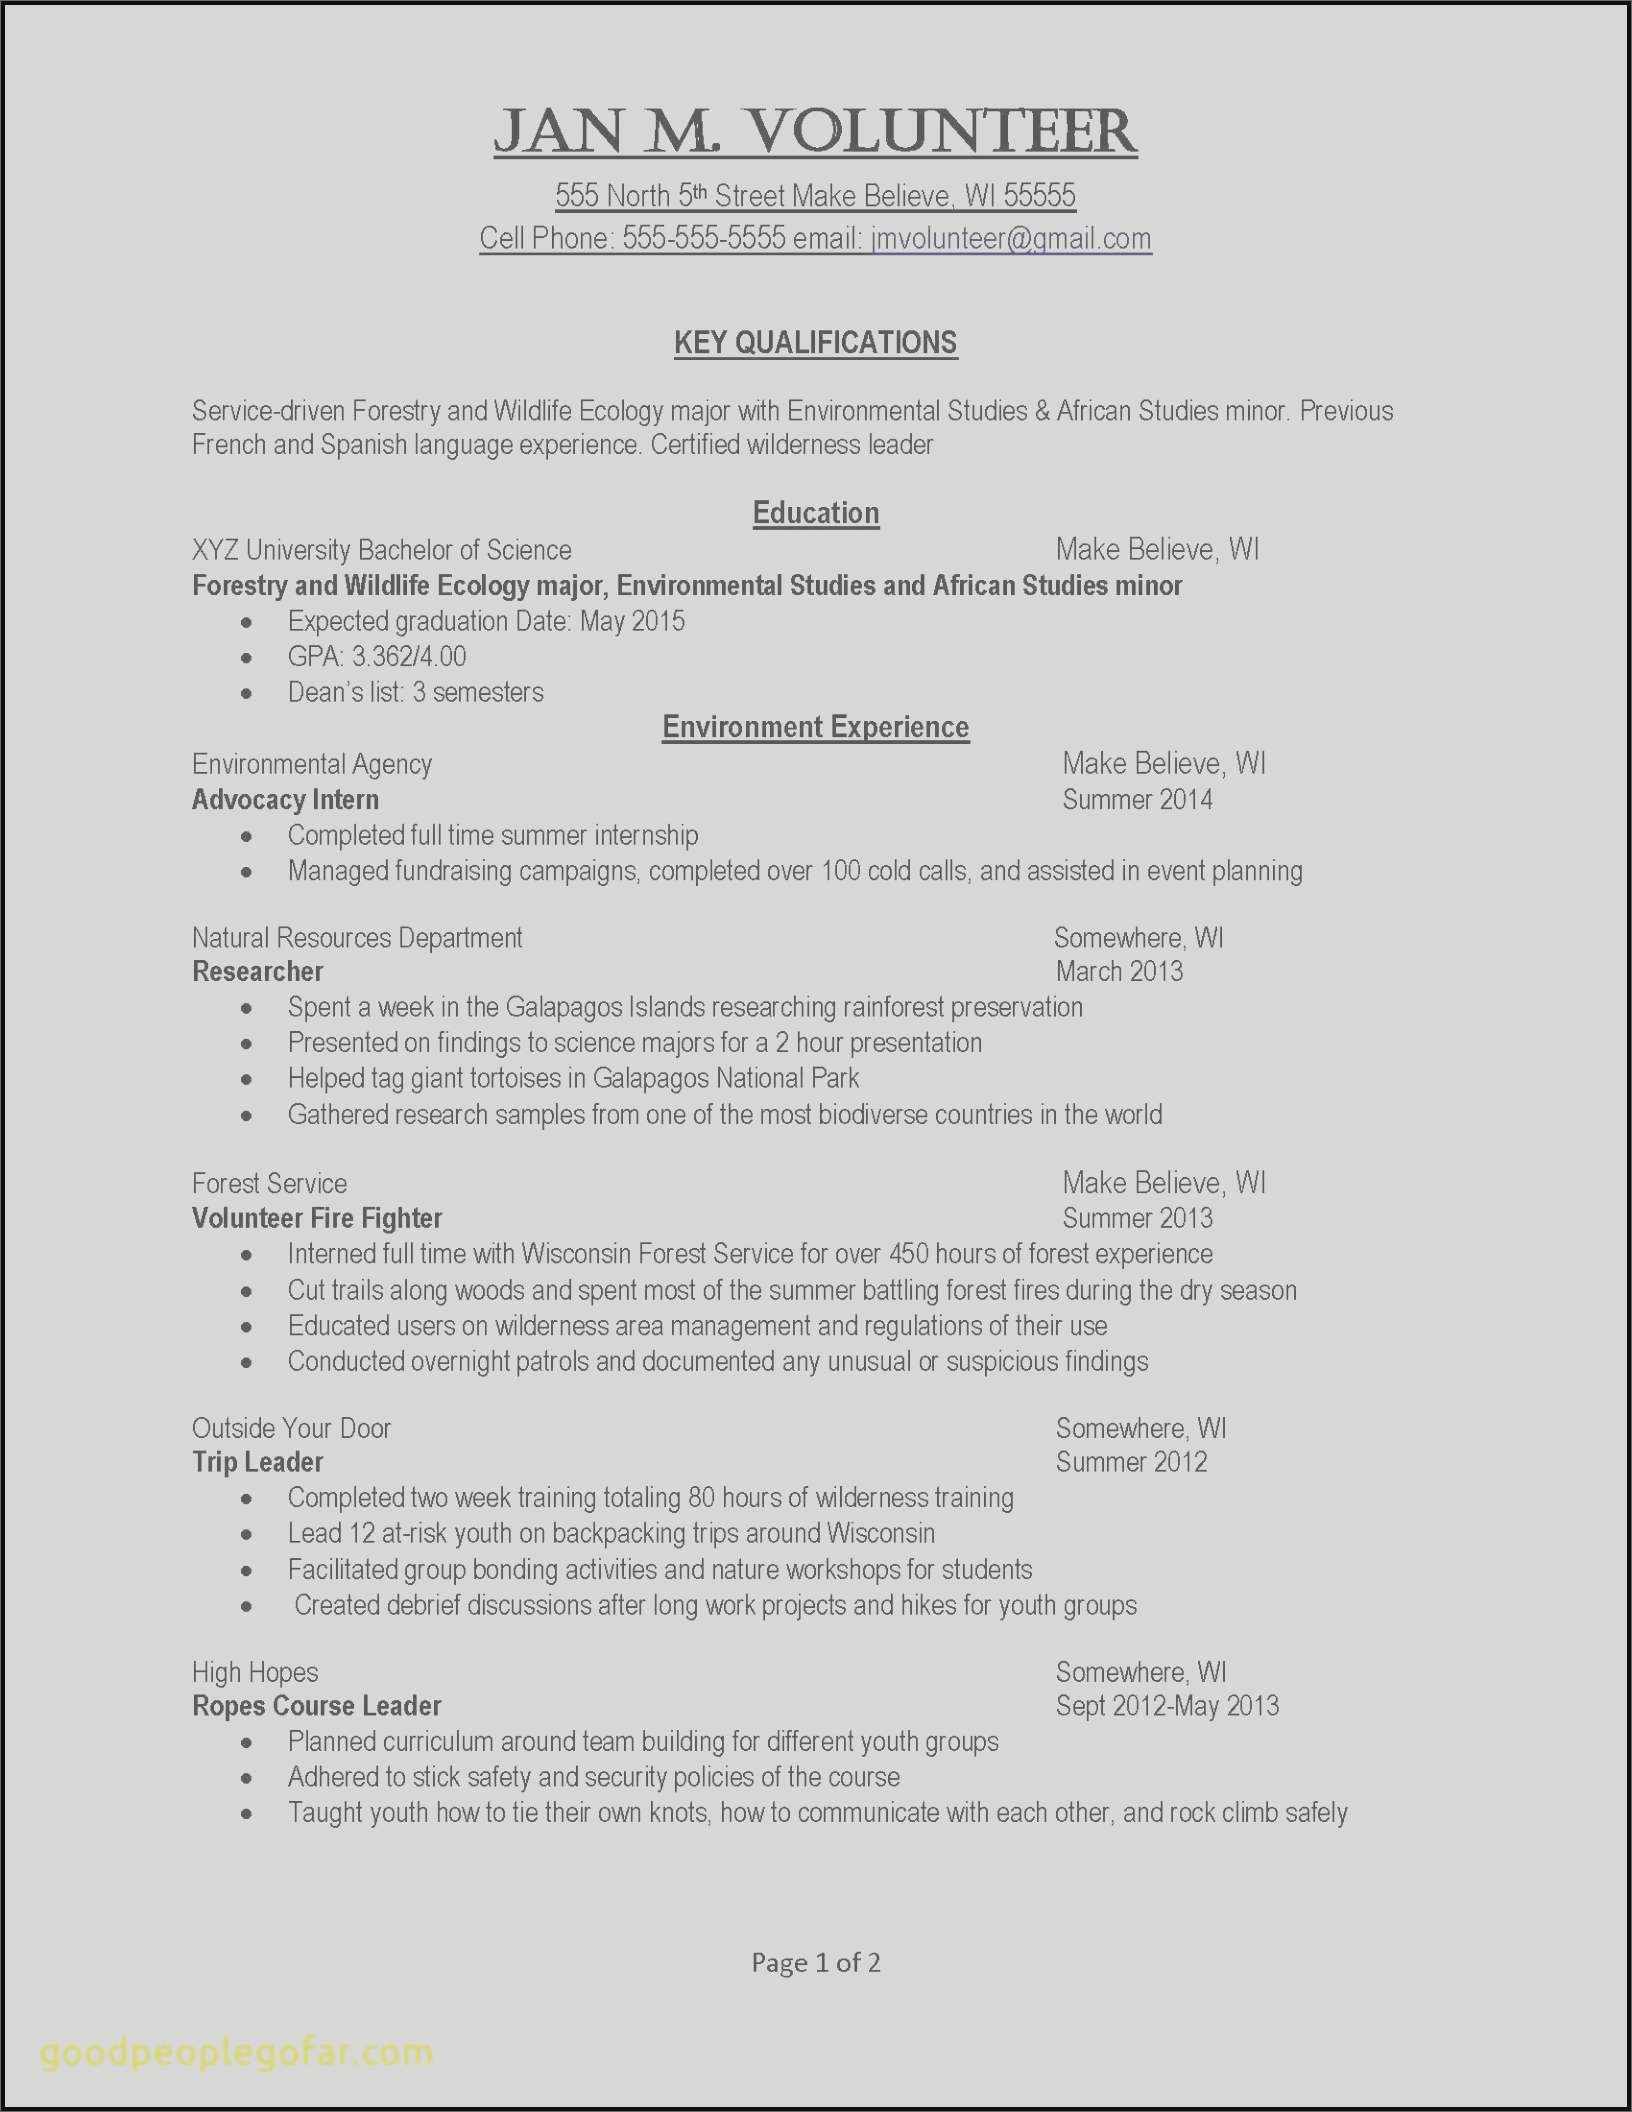 Executive Summary for Resume - Management Summary Sample Elegant 13 Premium Executive Summary